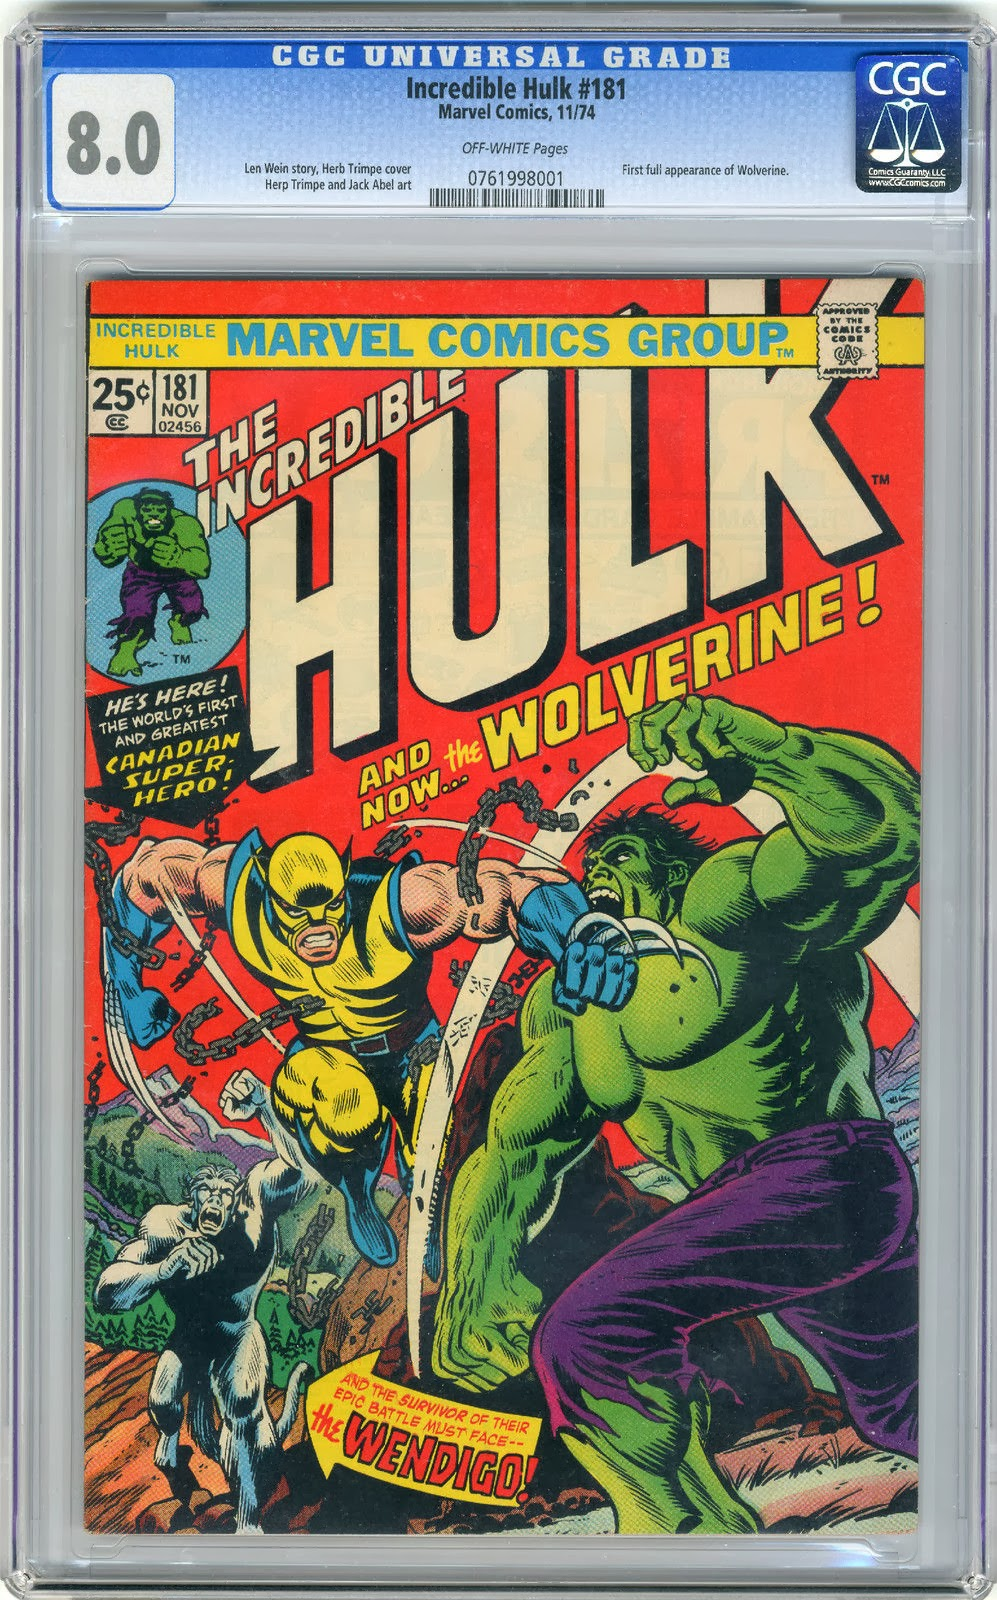 http://www.totalcomicmayhem.com/2014/03/incredible-hulk-181-cgc-80.html